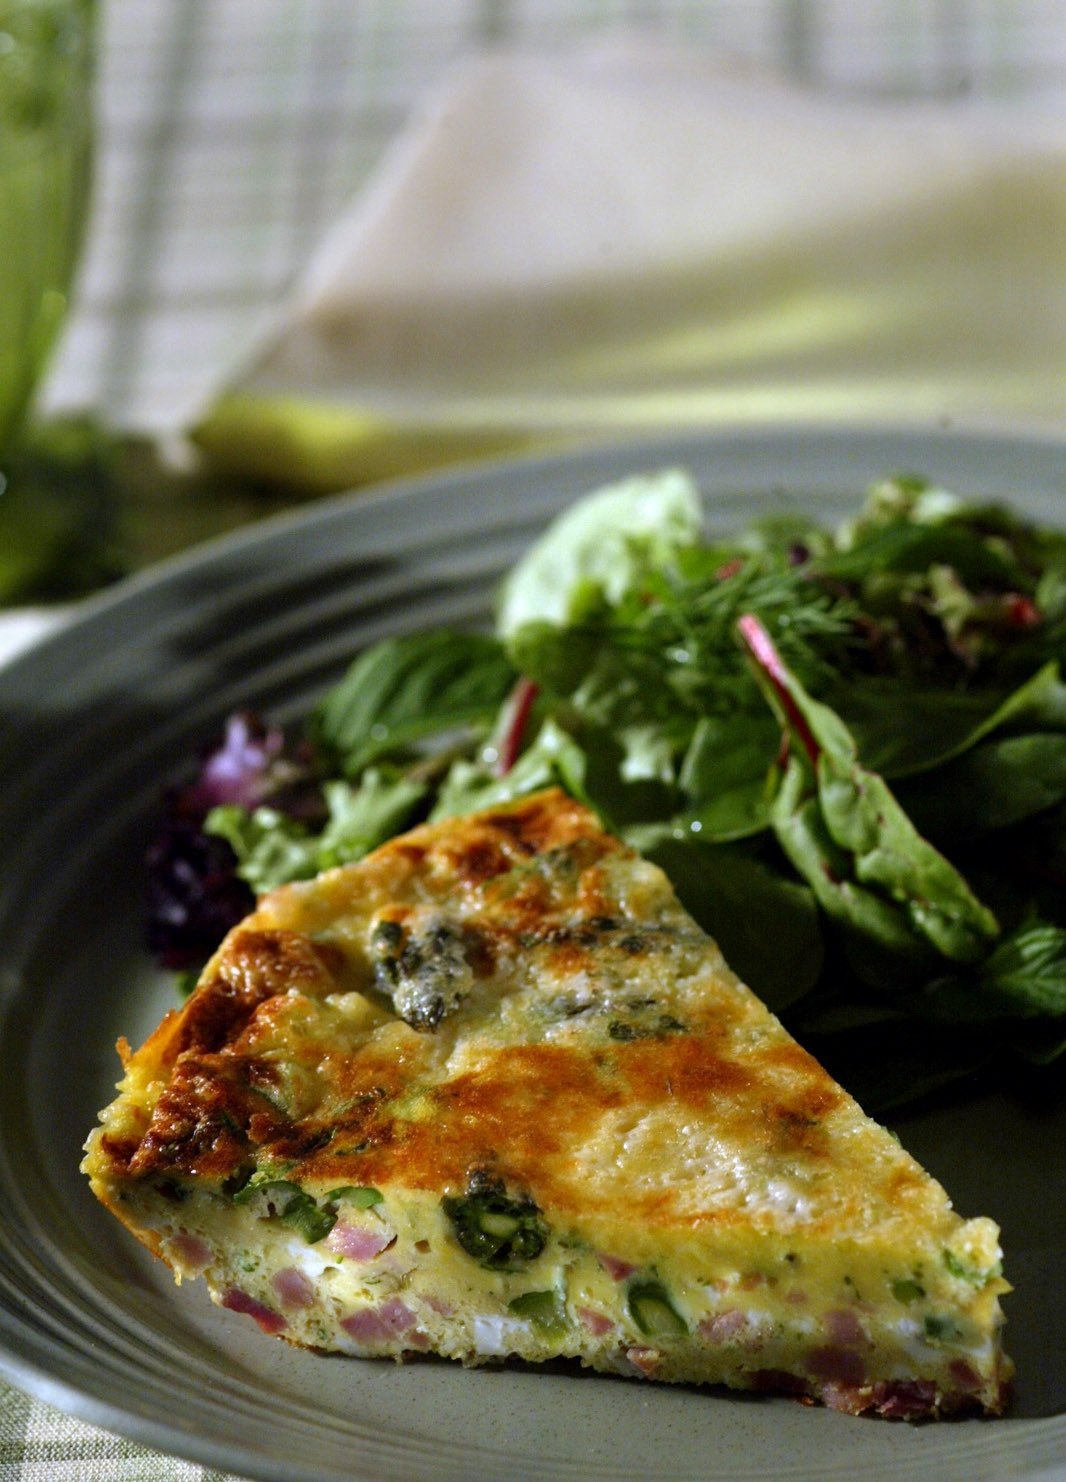 Greens, feta cheese and ham make a filling and delicious frittata. (Getty Images)